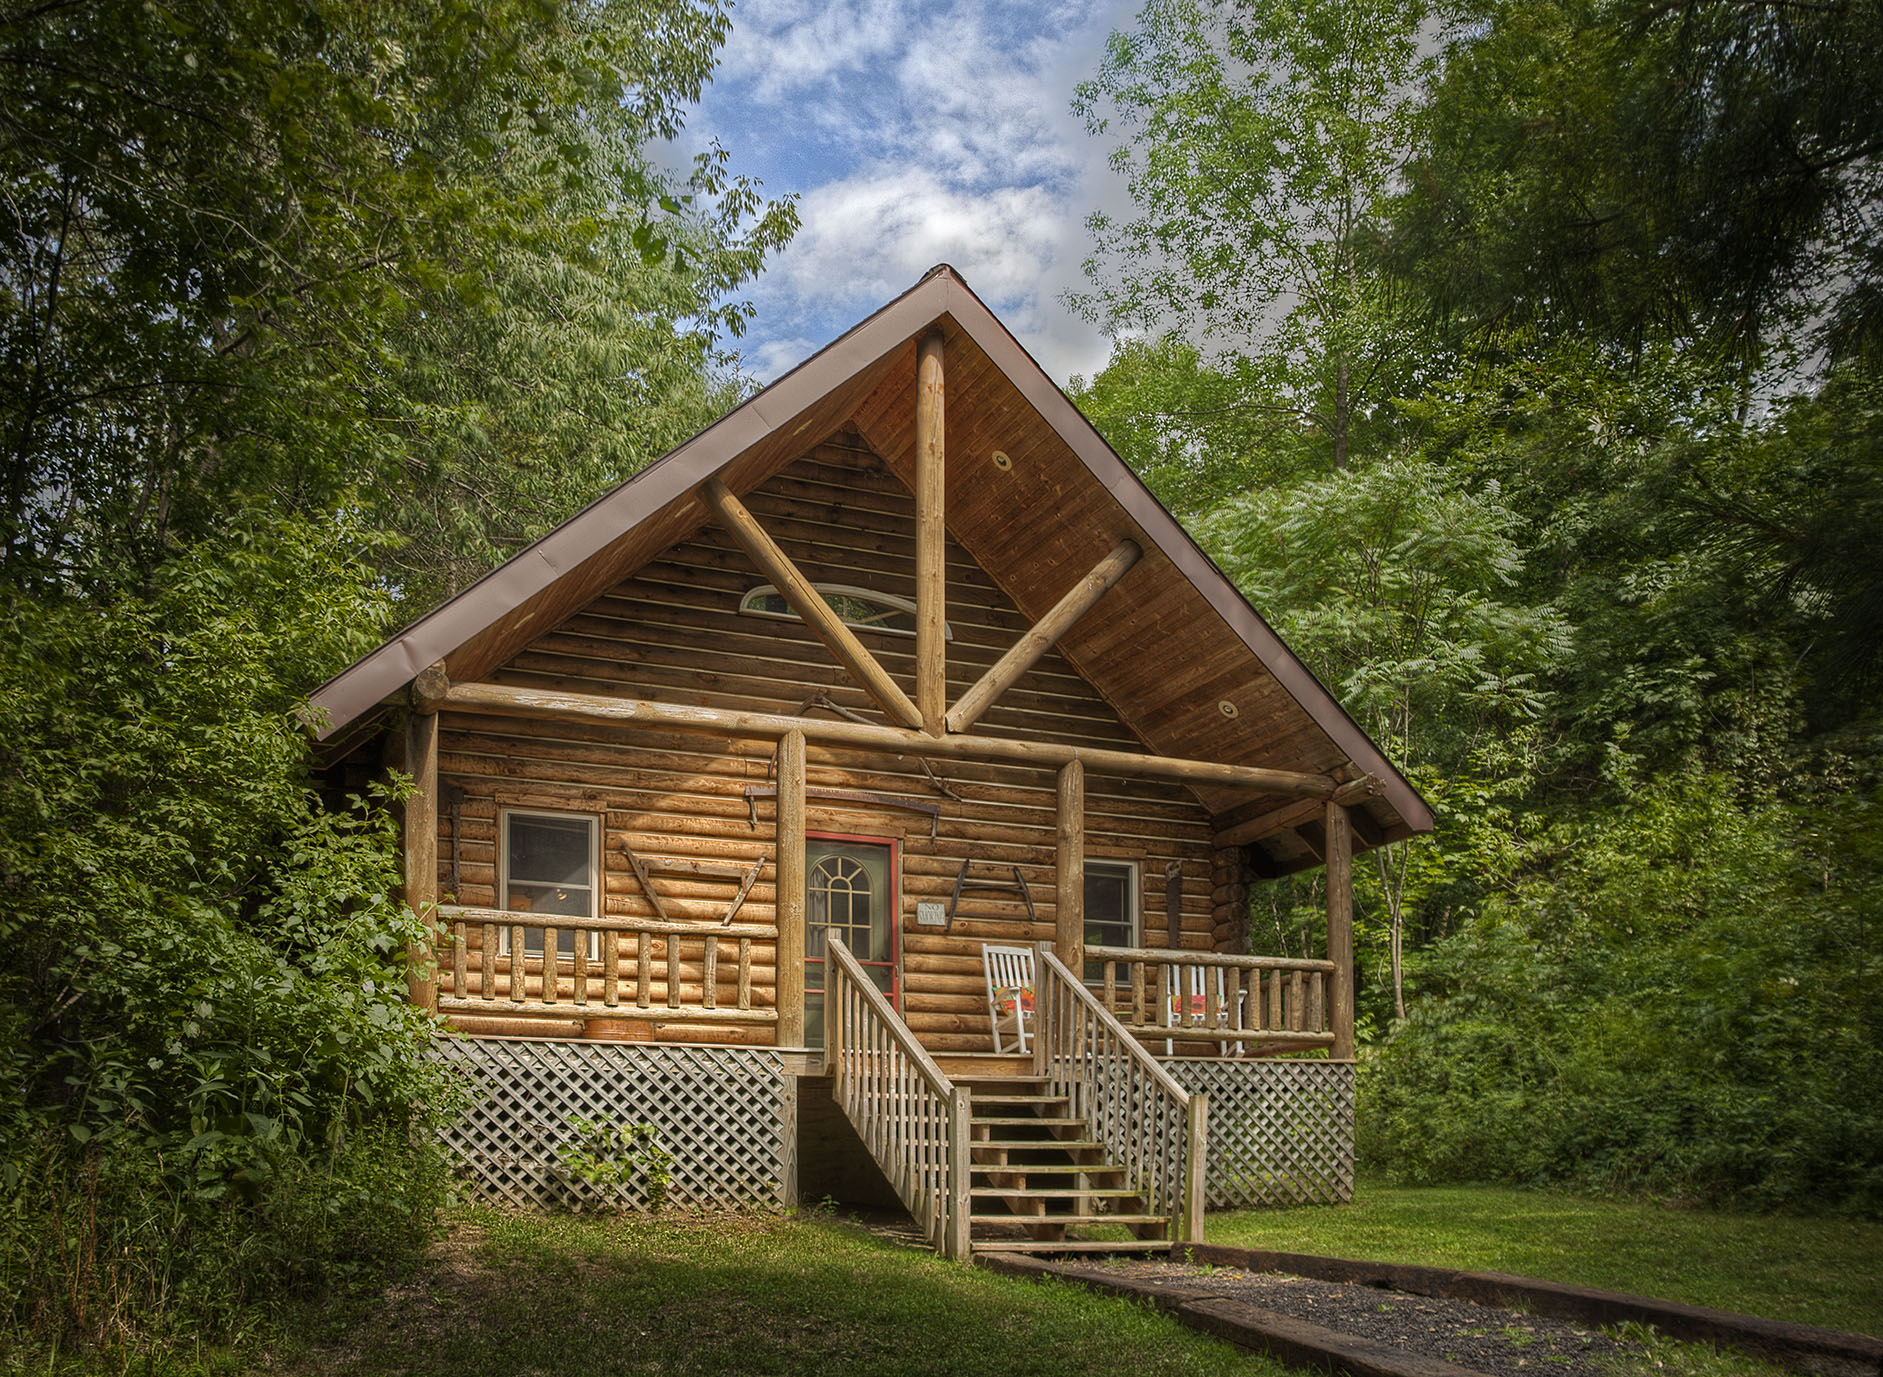 Dream House In The Woods: Amazing Cabins